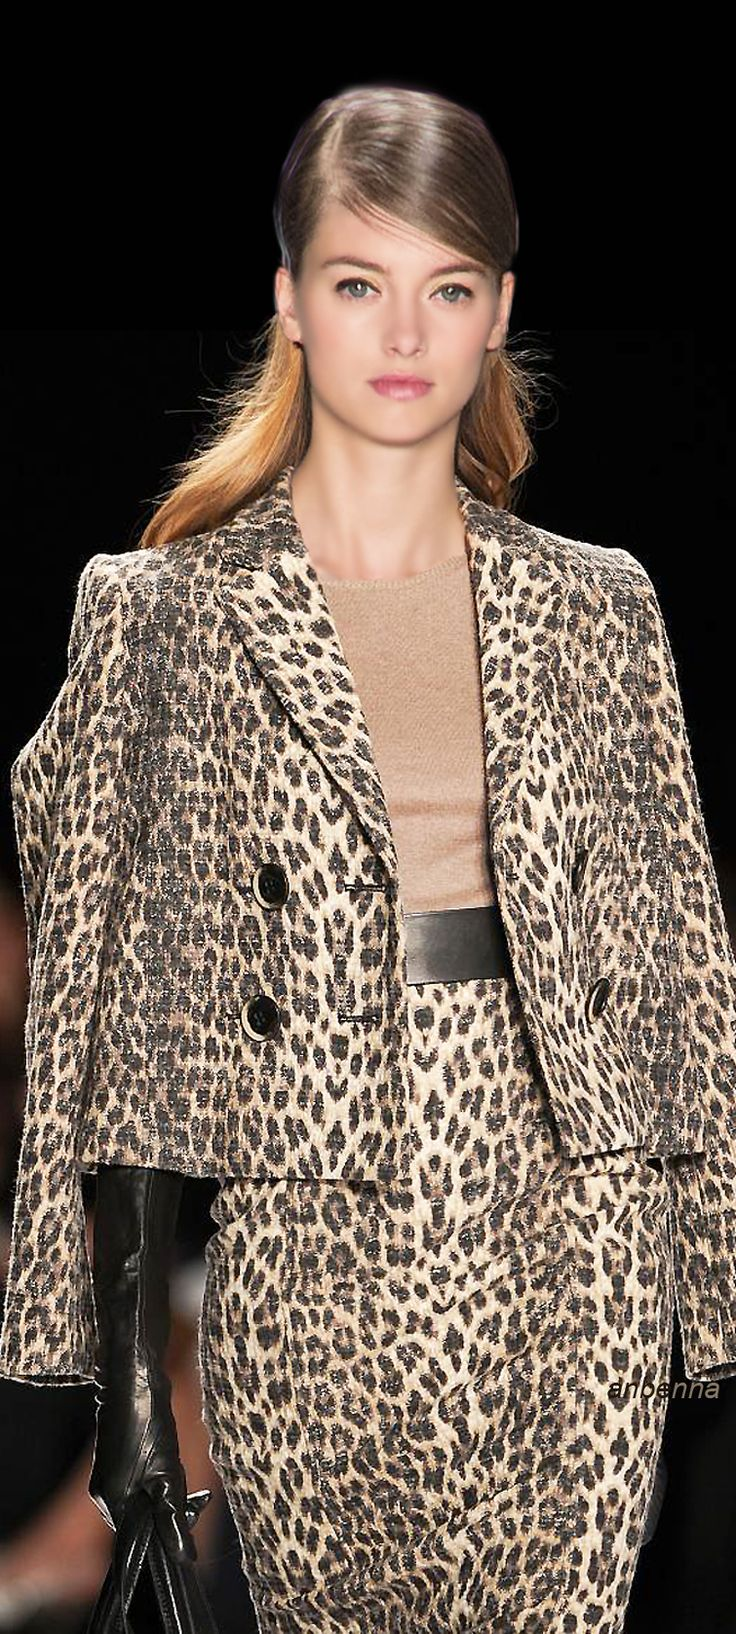 ♡✿PM. /. I love the shape, but I'll never be able to like animal prints